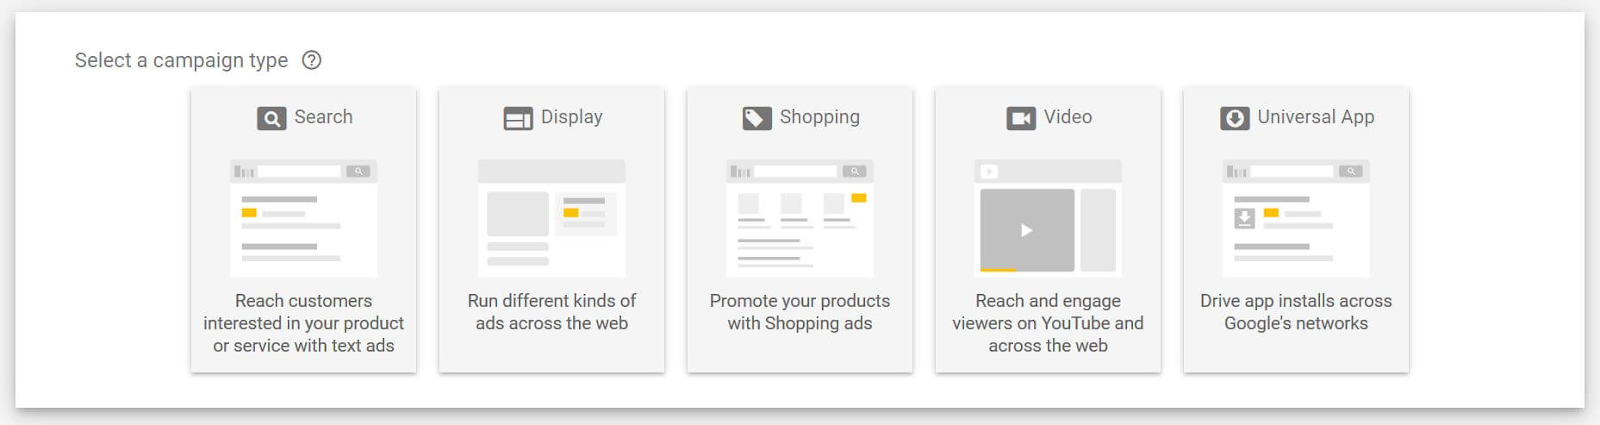 new campaign type - google ads